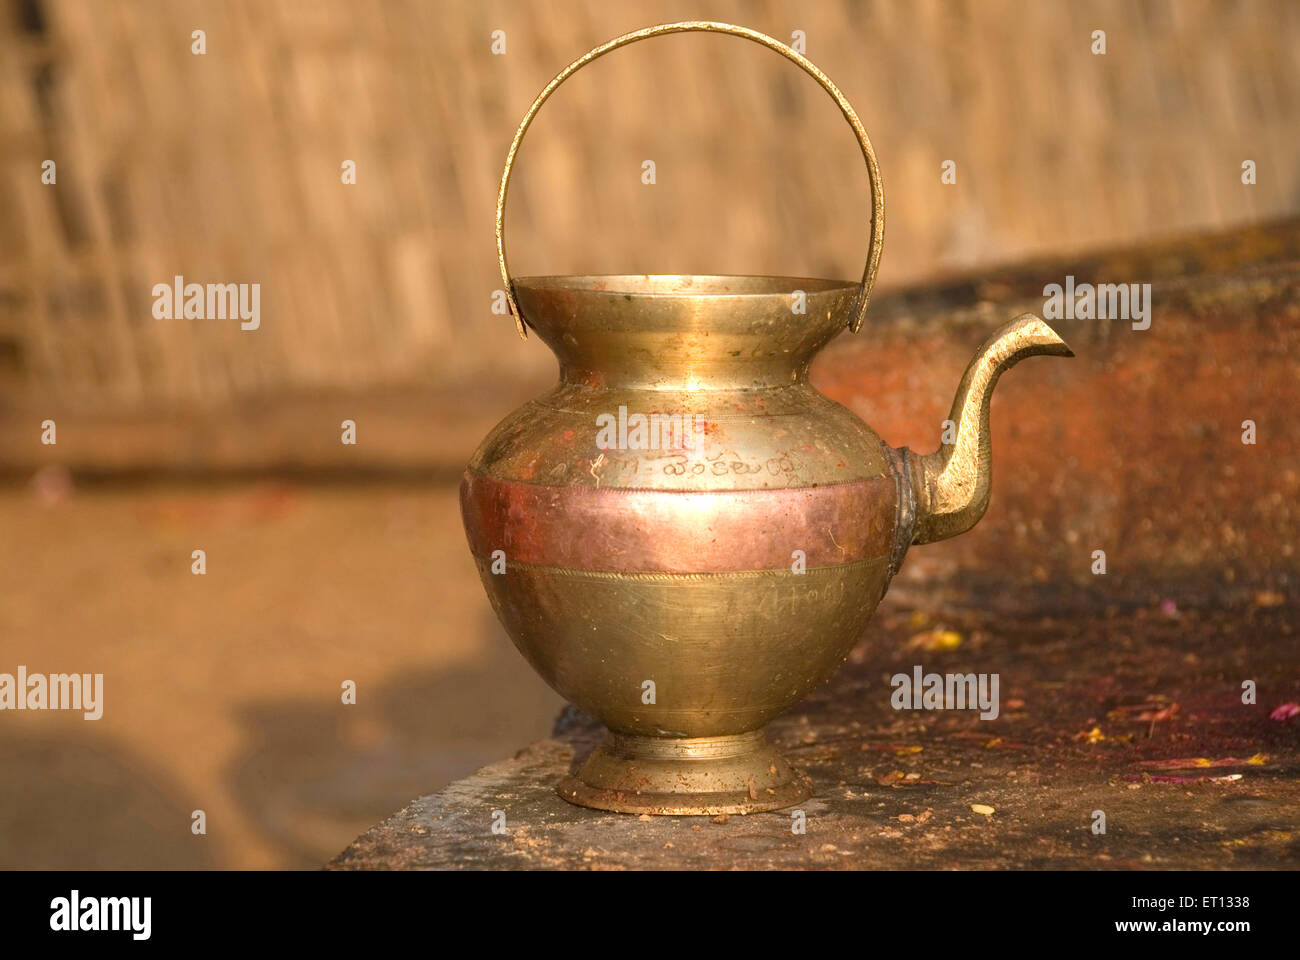 Brass pot - Stock Image